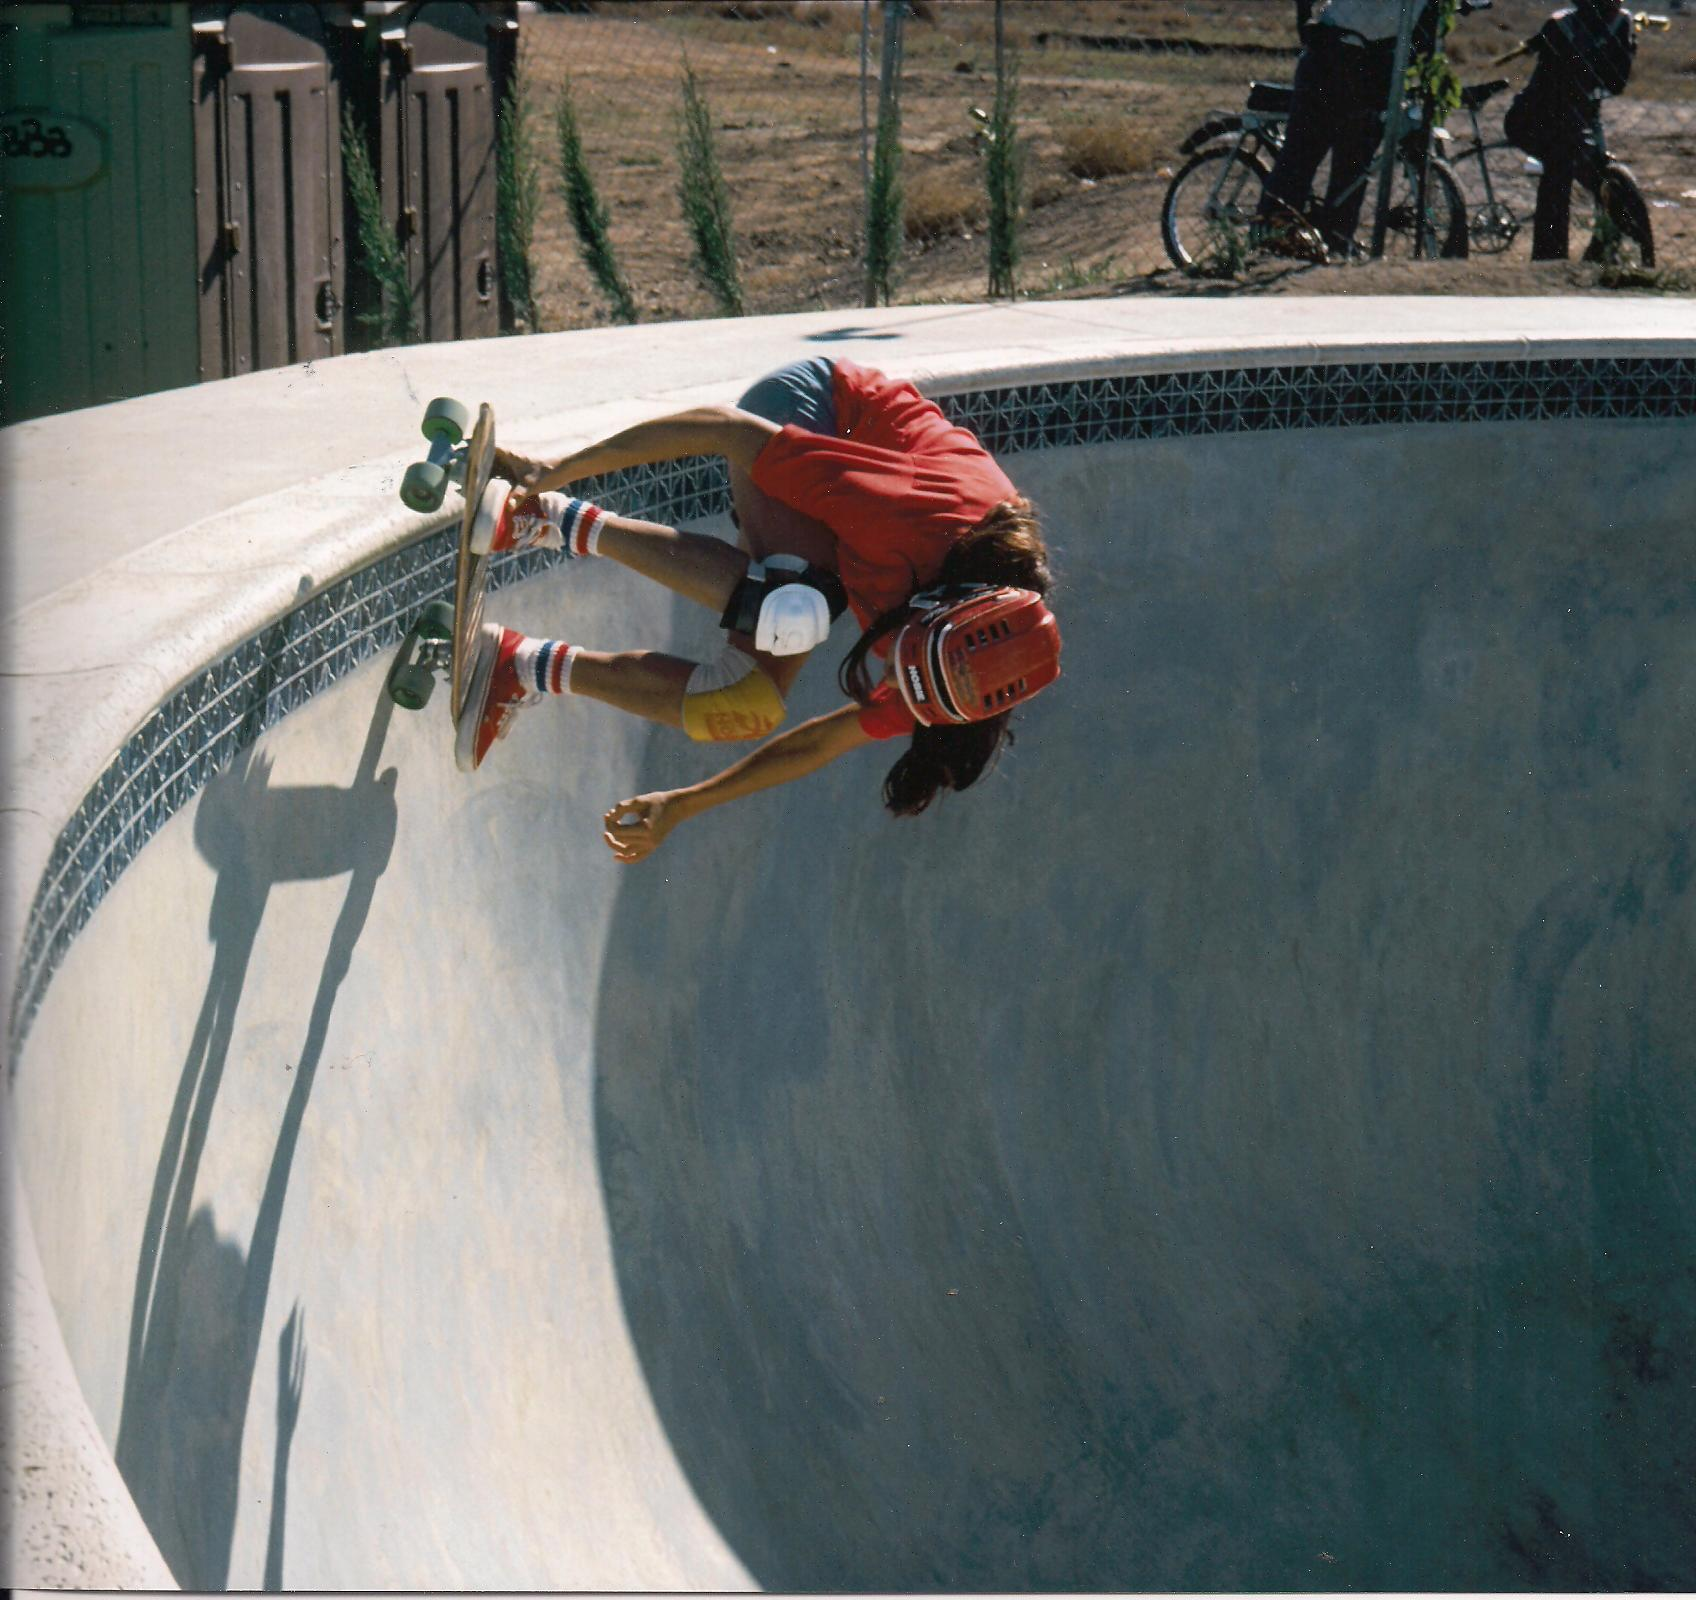 Photo: Going for the lip of the pool at Spring Valley!